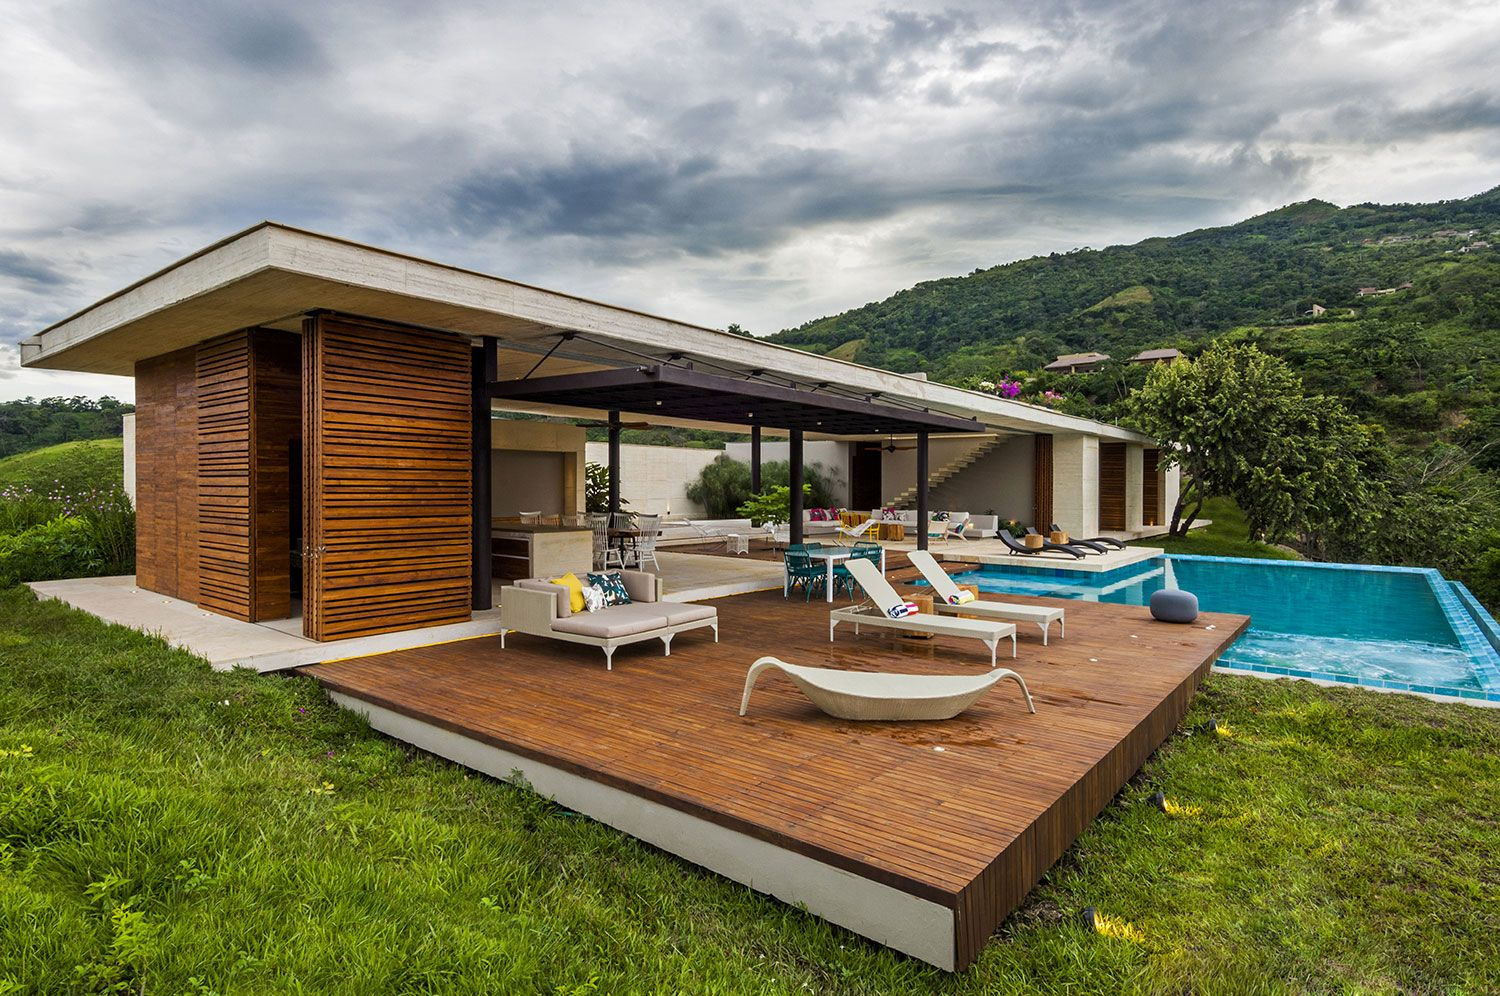 Merveilleux Modern Country Home In Colombia Adorns The Landscape With Its Refreshing  Design